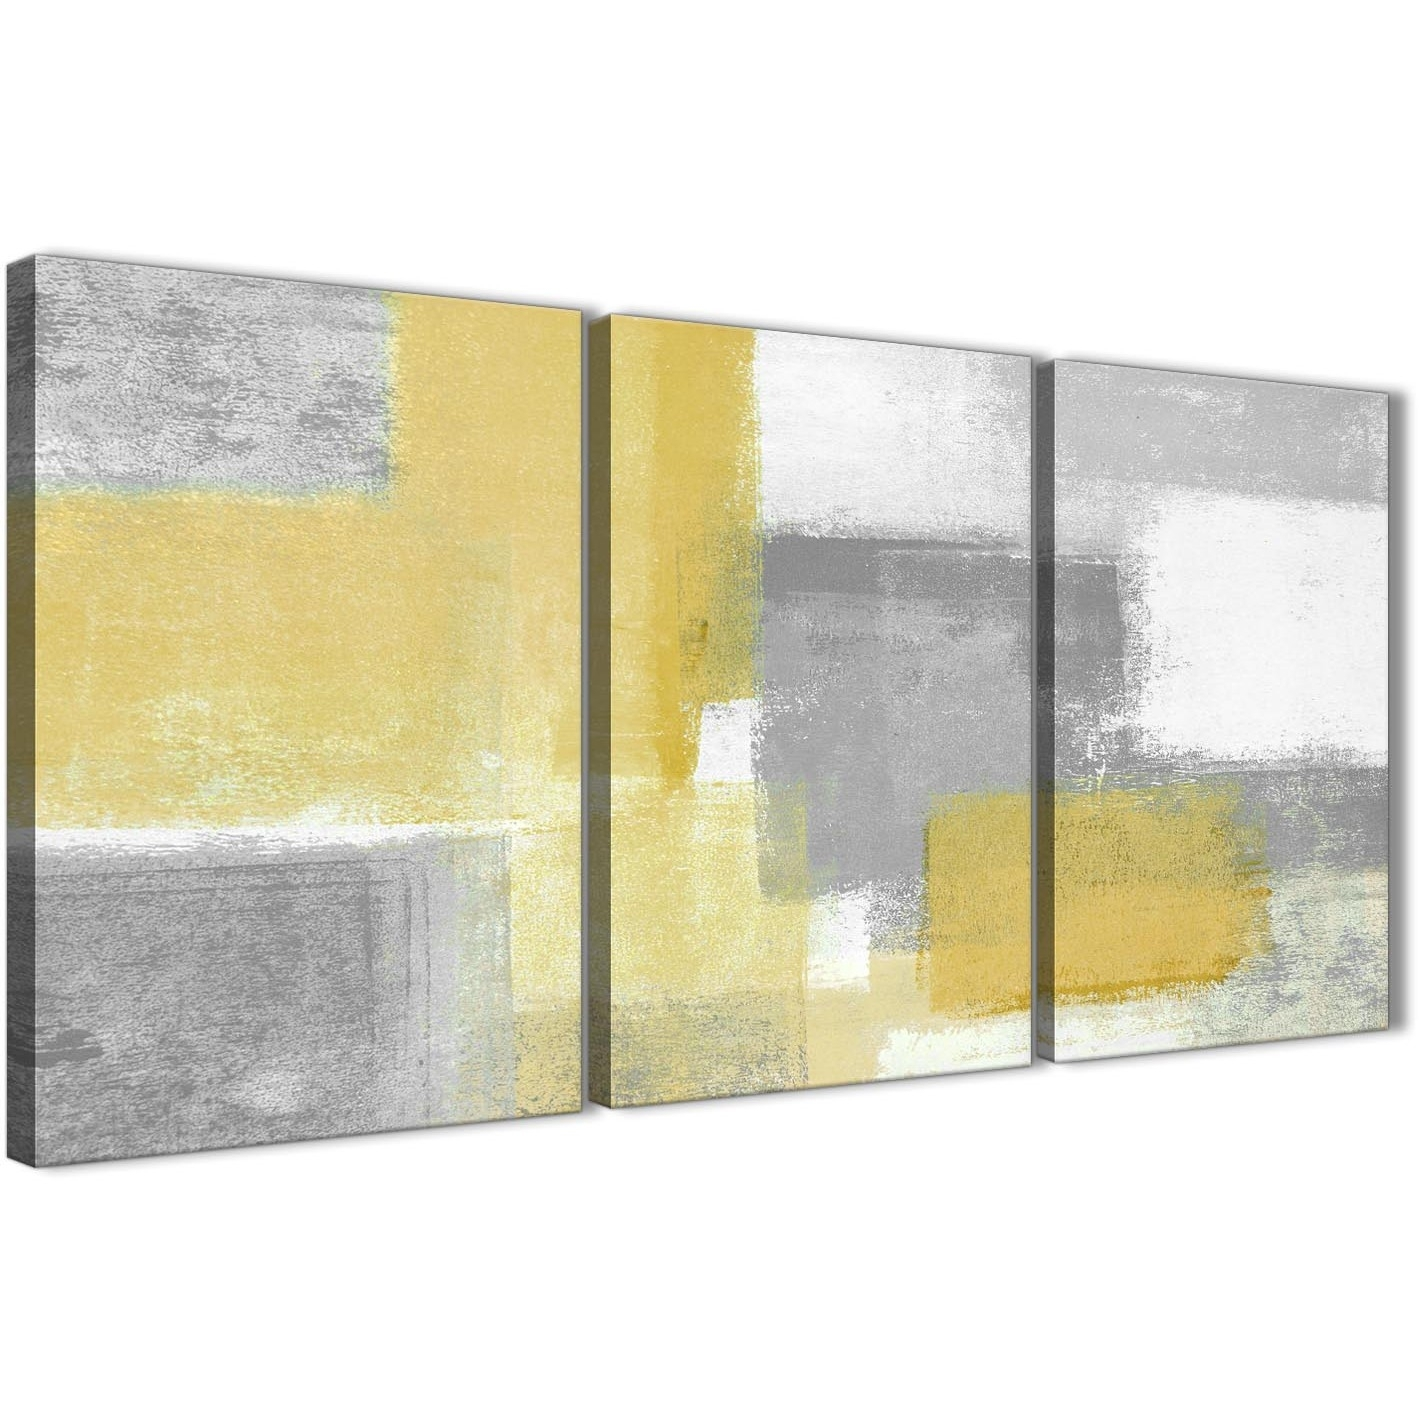 3 Panel Mustard Yellow Grey Kitchen Canvas Wall Art Decor In Most Current Grey Canvas Wall Art (View 2 of 15)